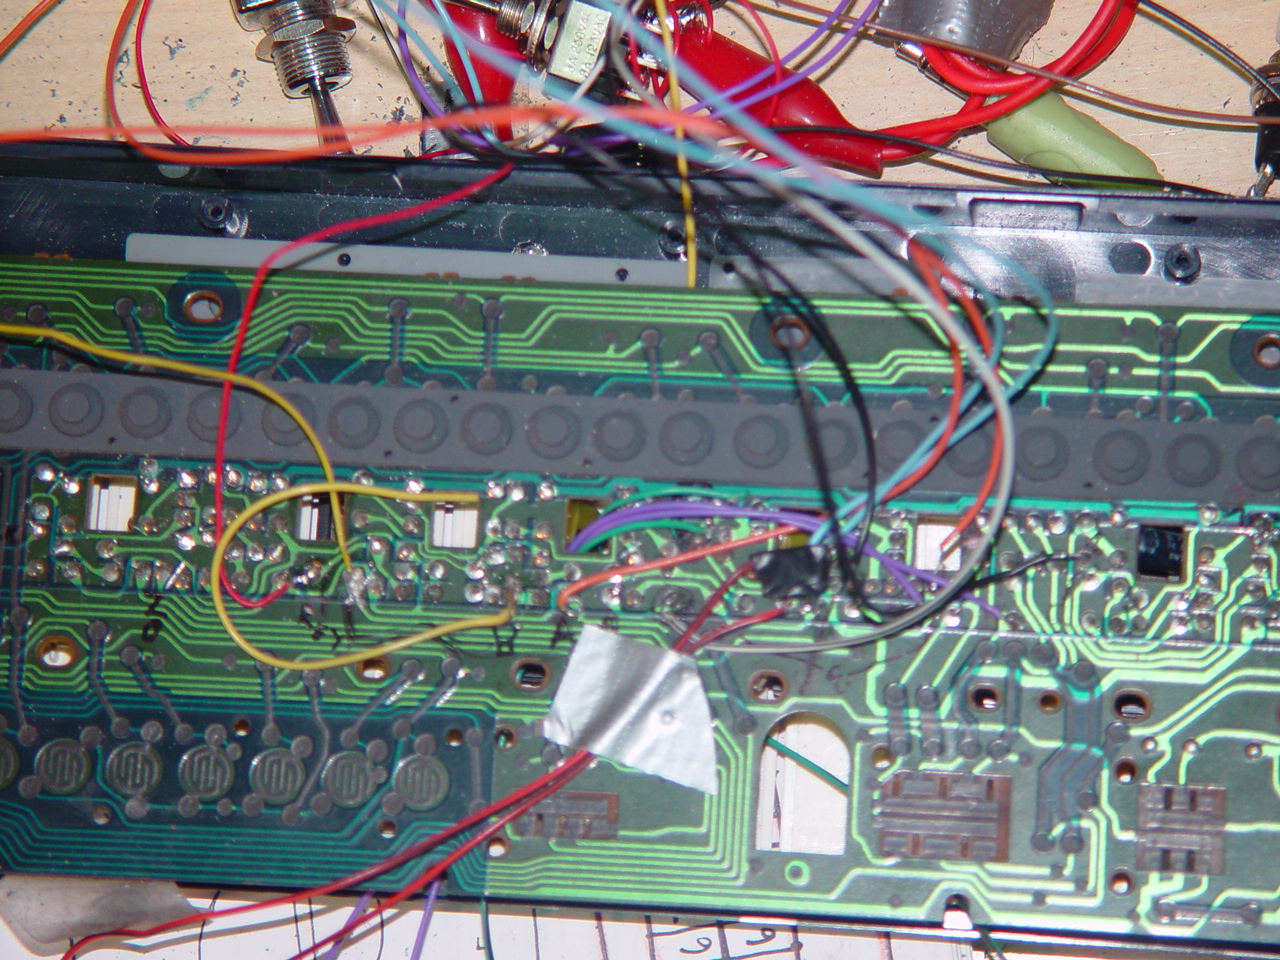 Bent Casio Pt 1 Hacked Circuits By 9volts Circuitbending Circuitbent Noise Toys Cementimental Some Interesting Points On Circuit Board